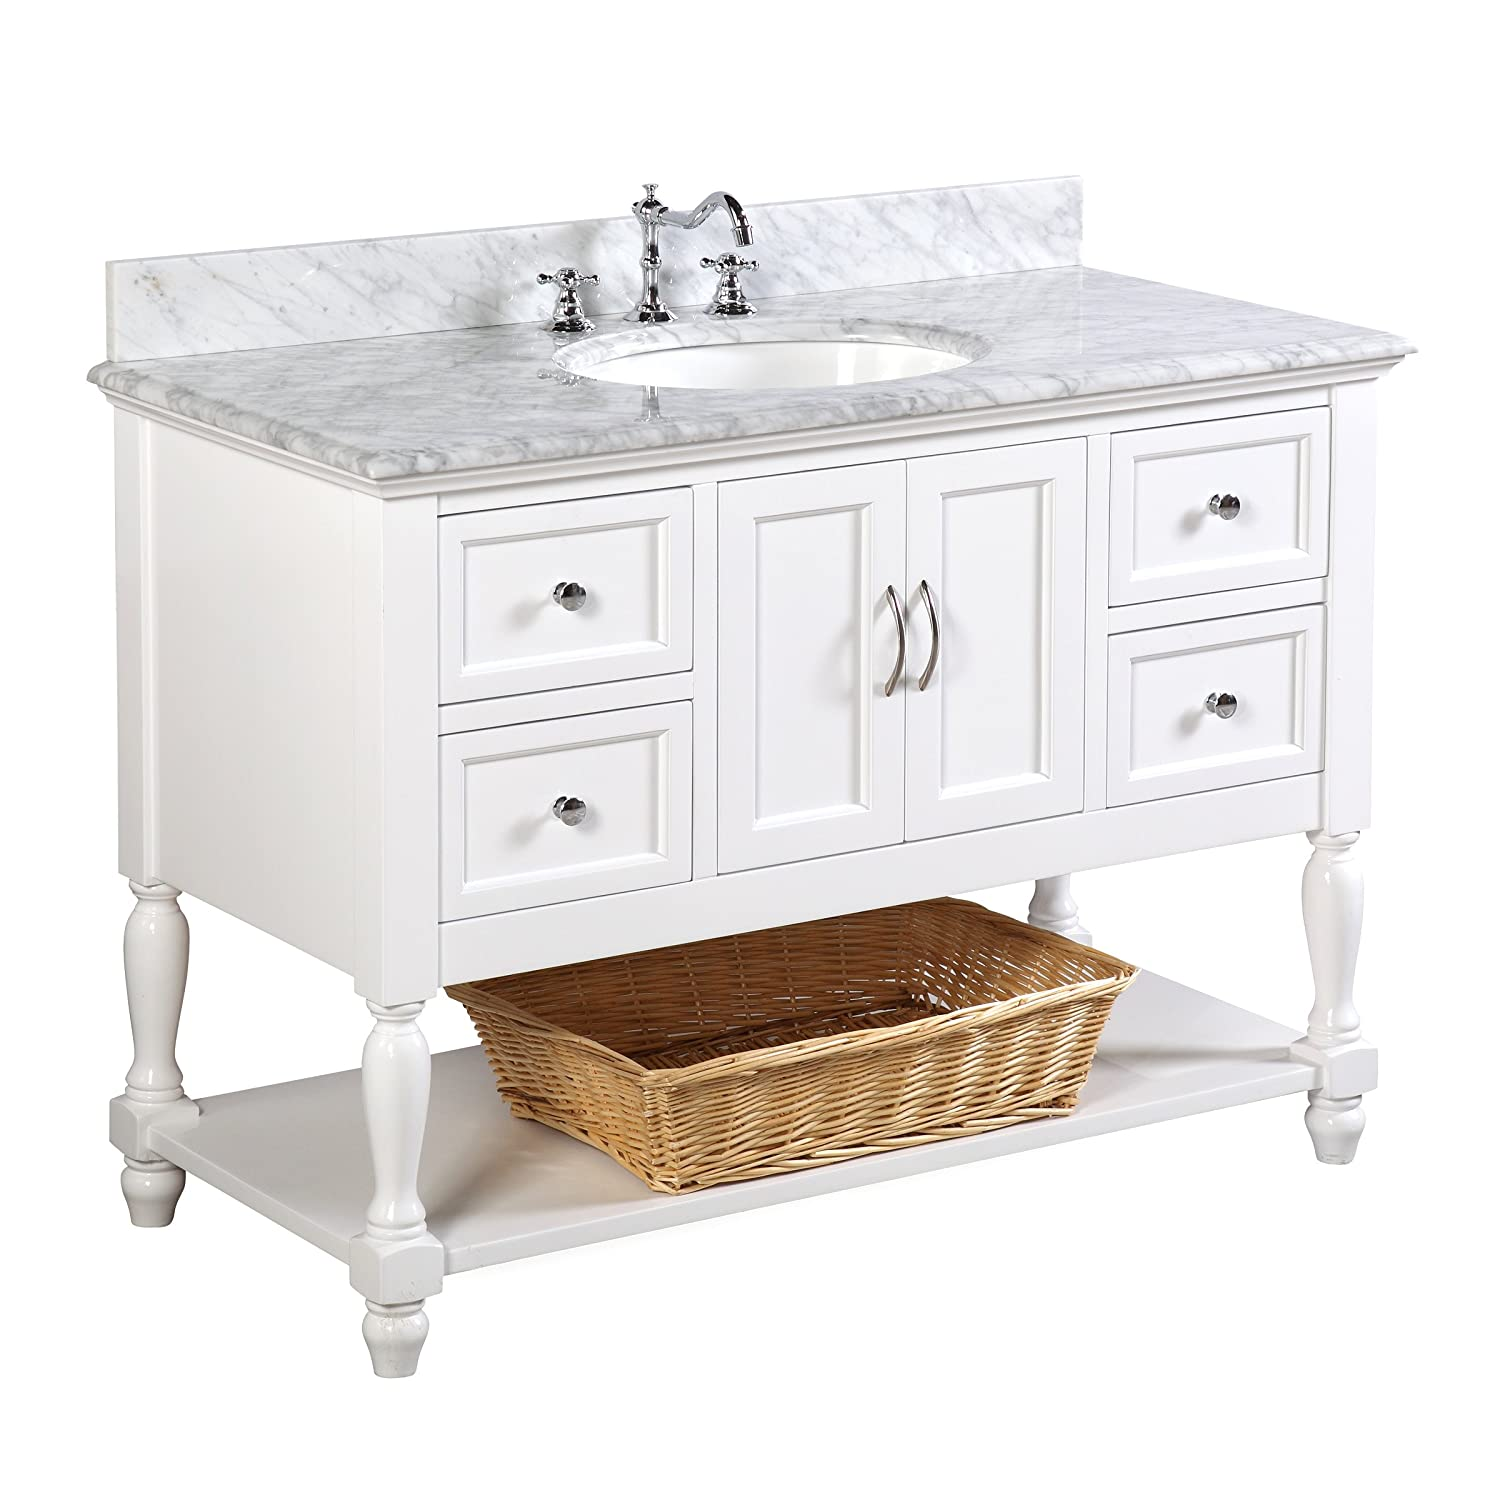 full inch cabinet bathroom right size tops vessel double of sink wood side cheap grey x with vanities top without furniture vanity